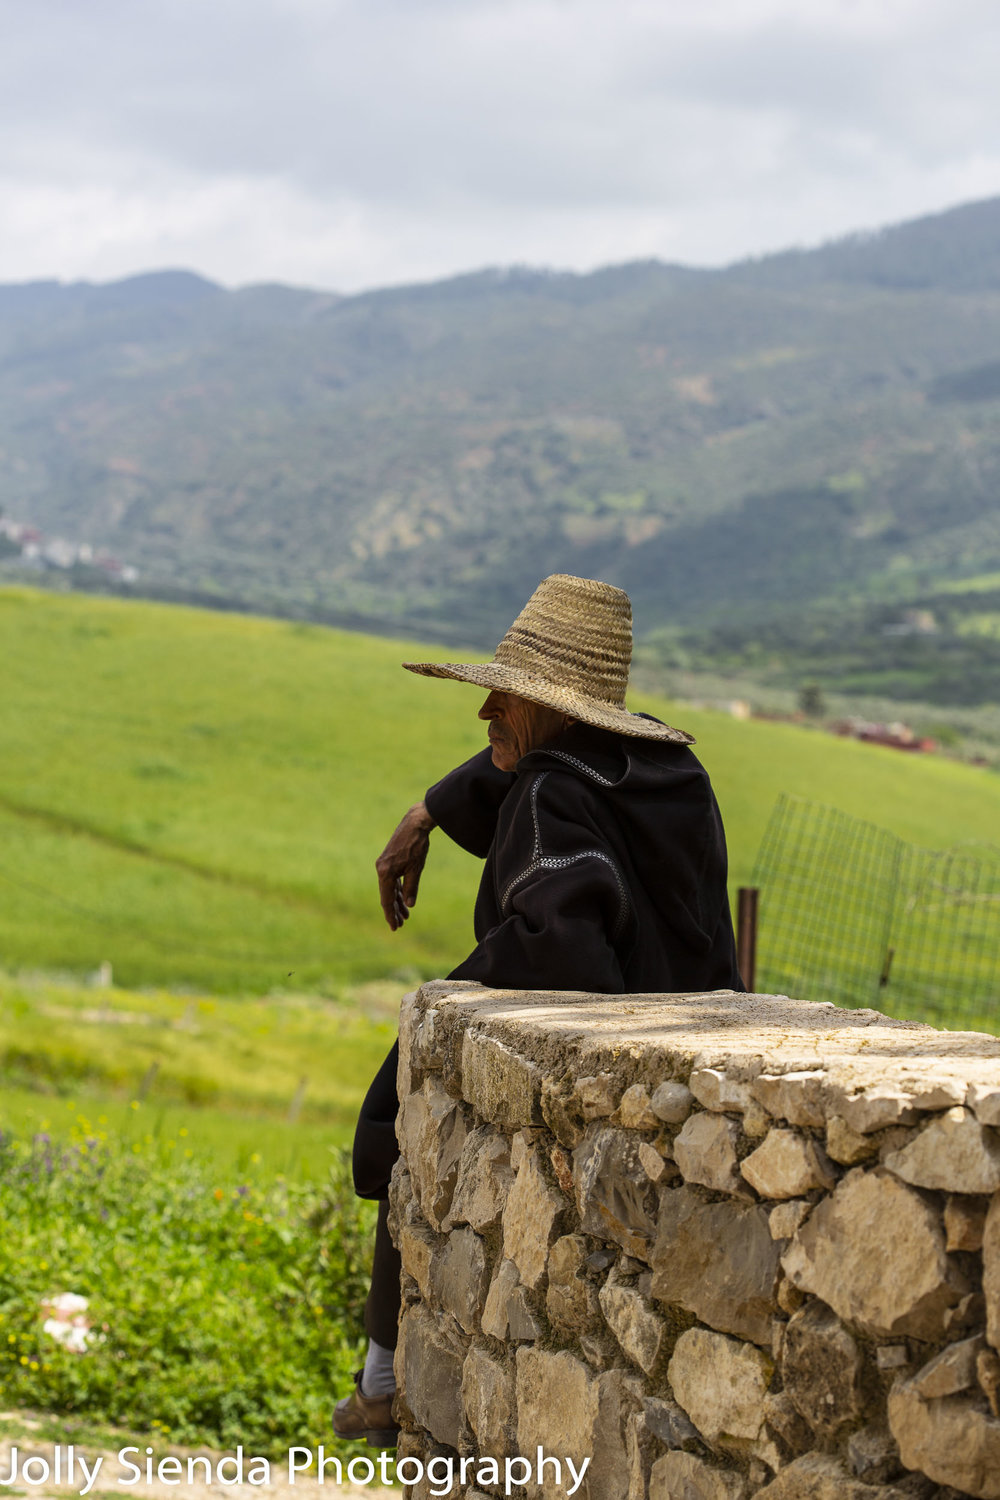 Shepherd wears a straw hat and rests